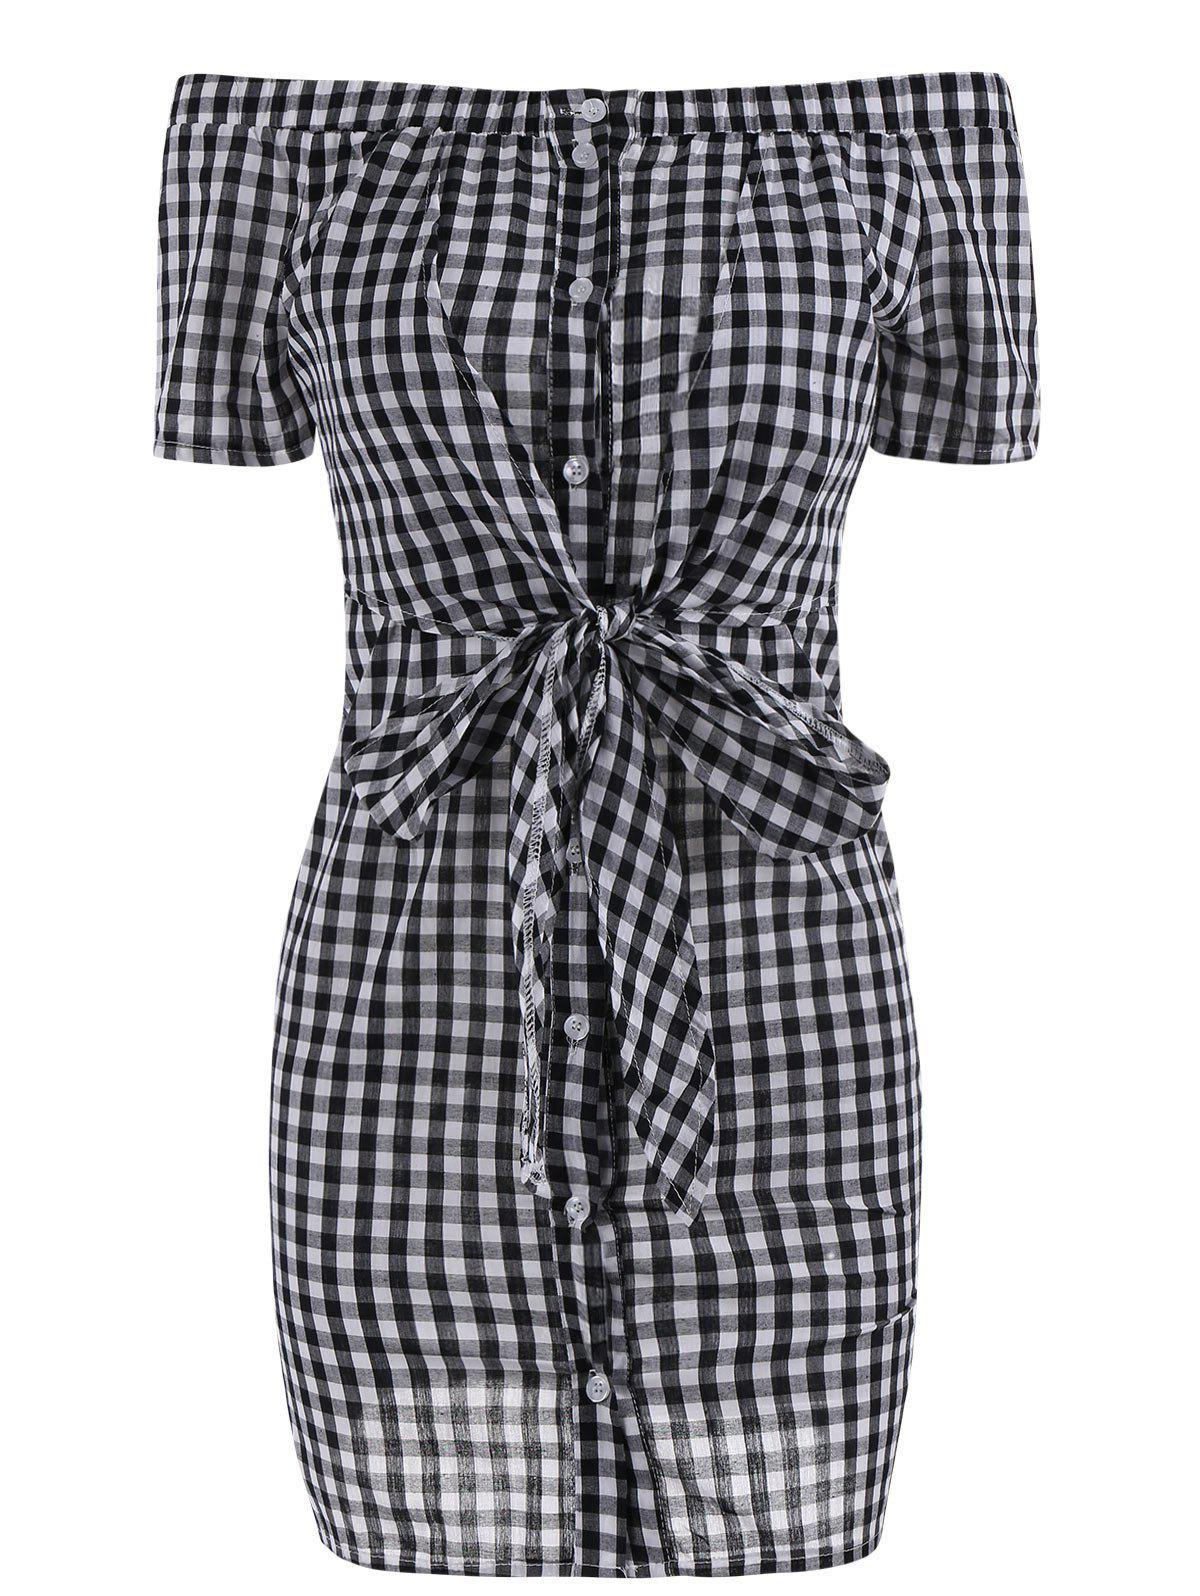 Fashion Plaid Off The Shoulder Bowknot Mini Dress